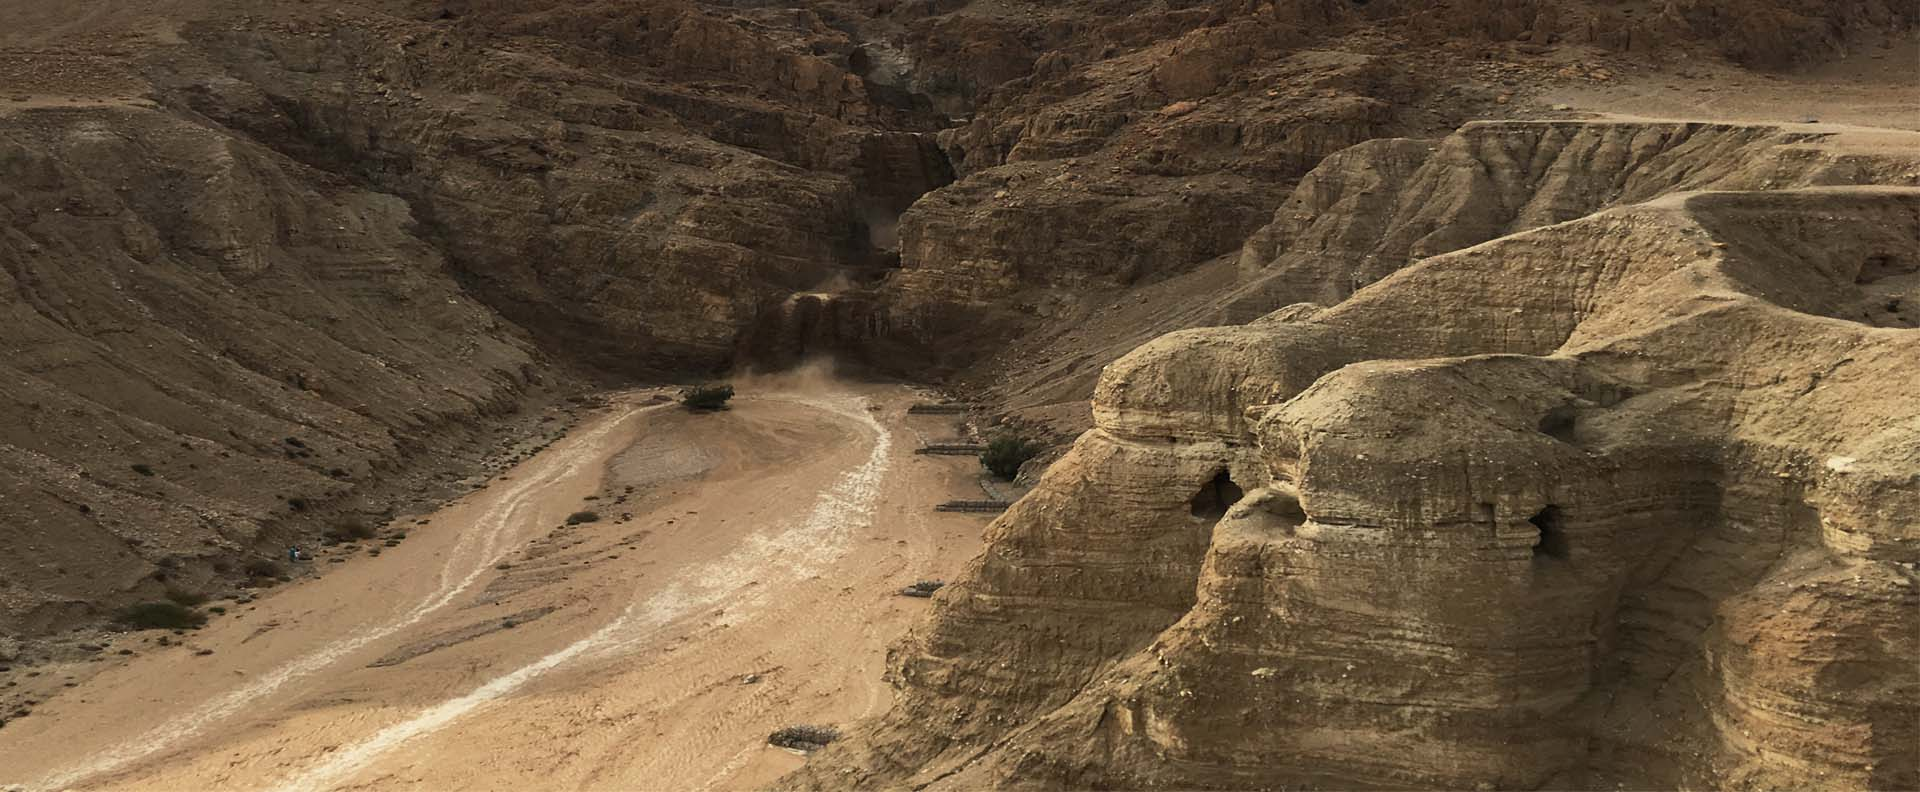 Qumran and Dead Sea Scrolls